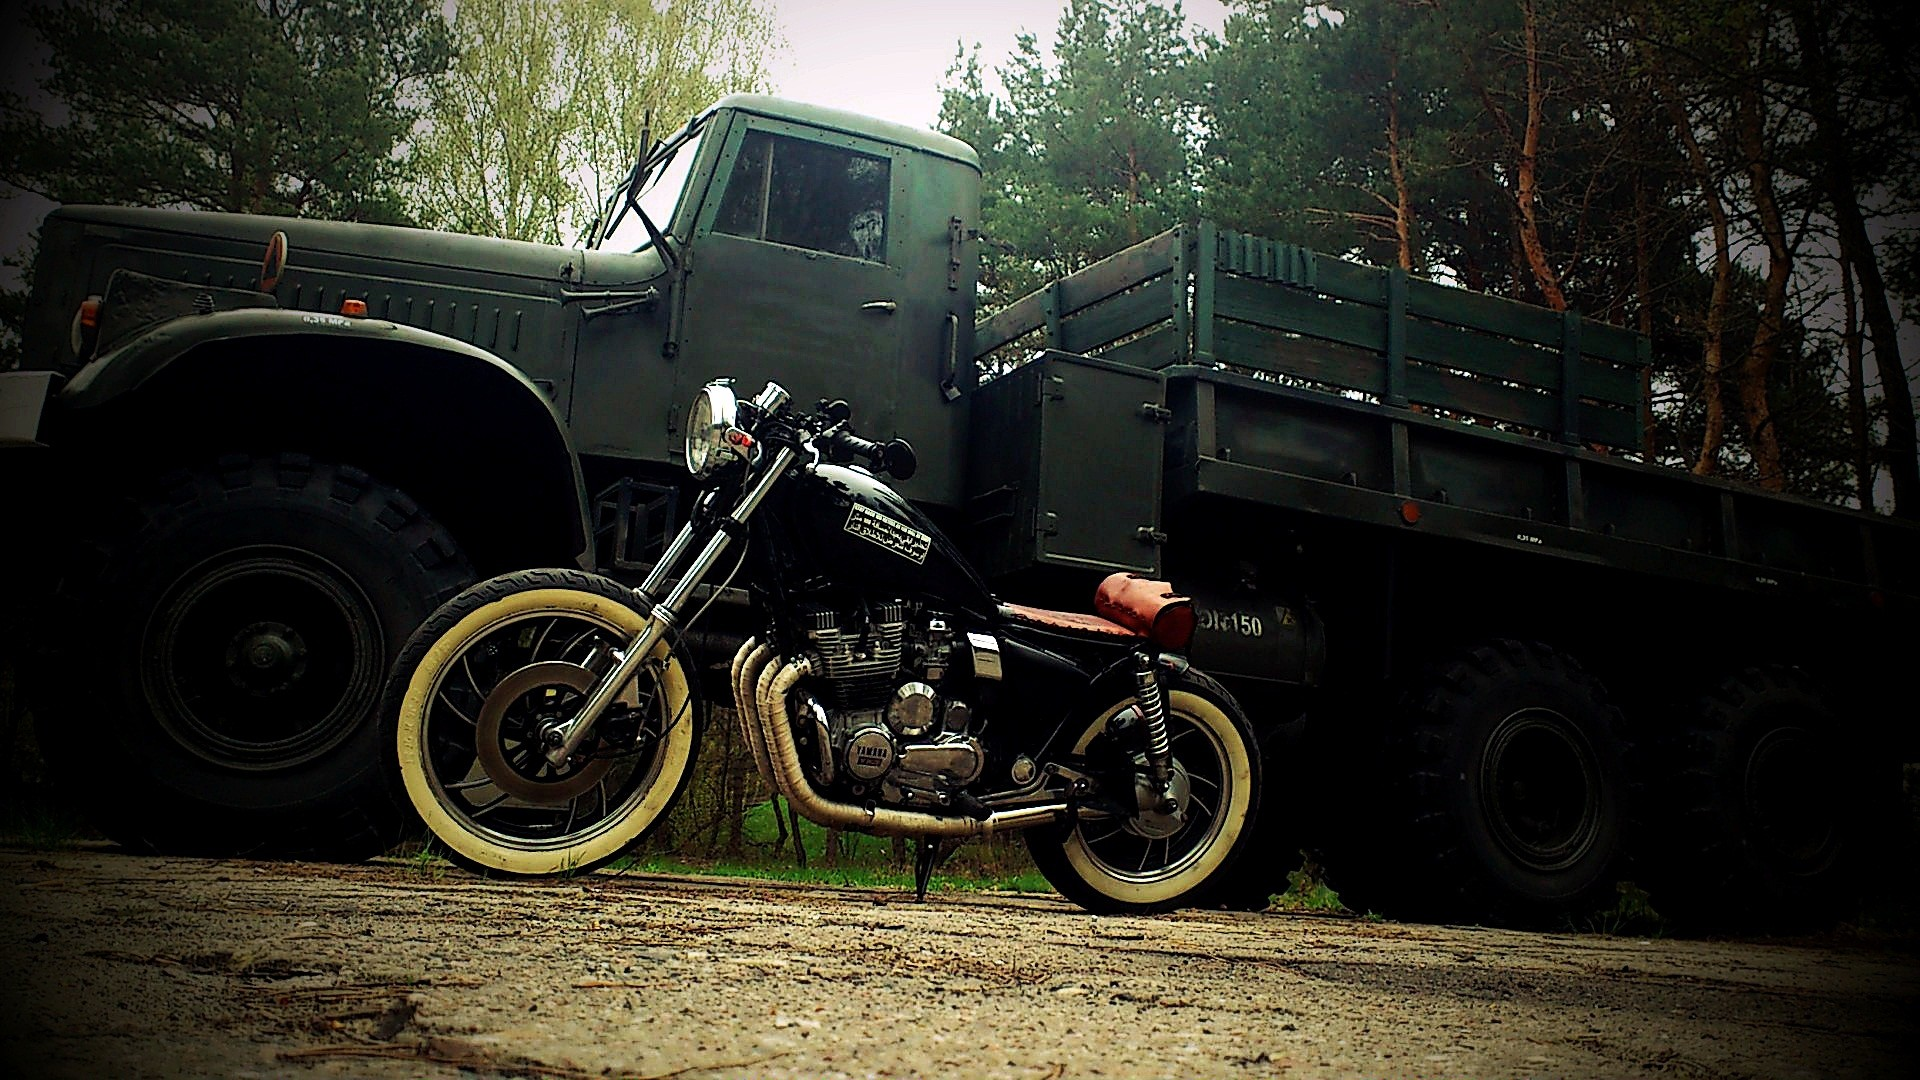 Res: 1920x1080, Bobber Motorcycle HD Wallpaper. Click on the image to view full size and  download.